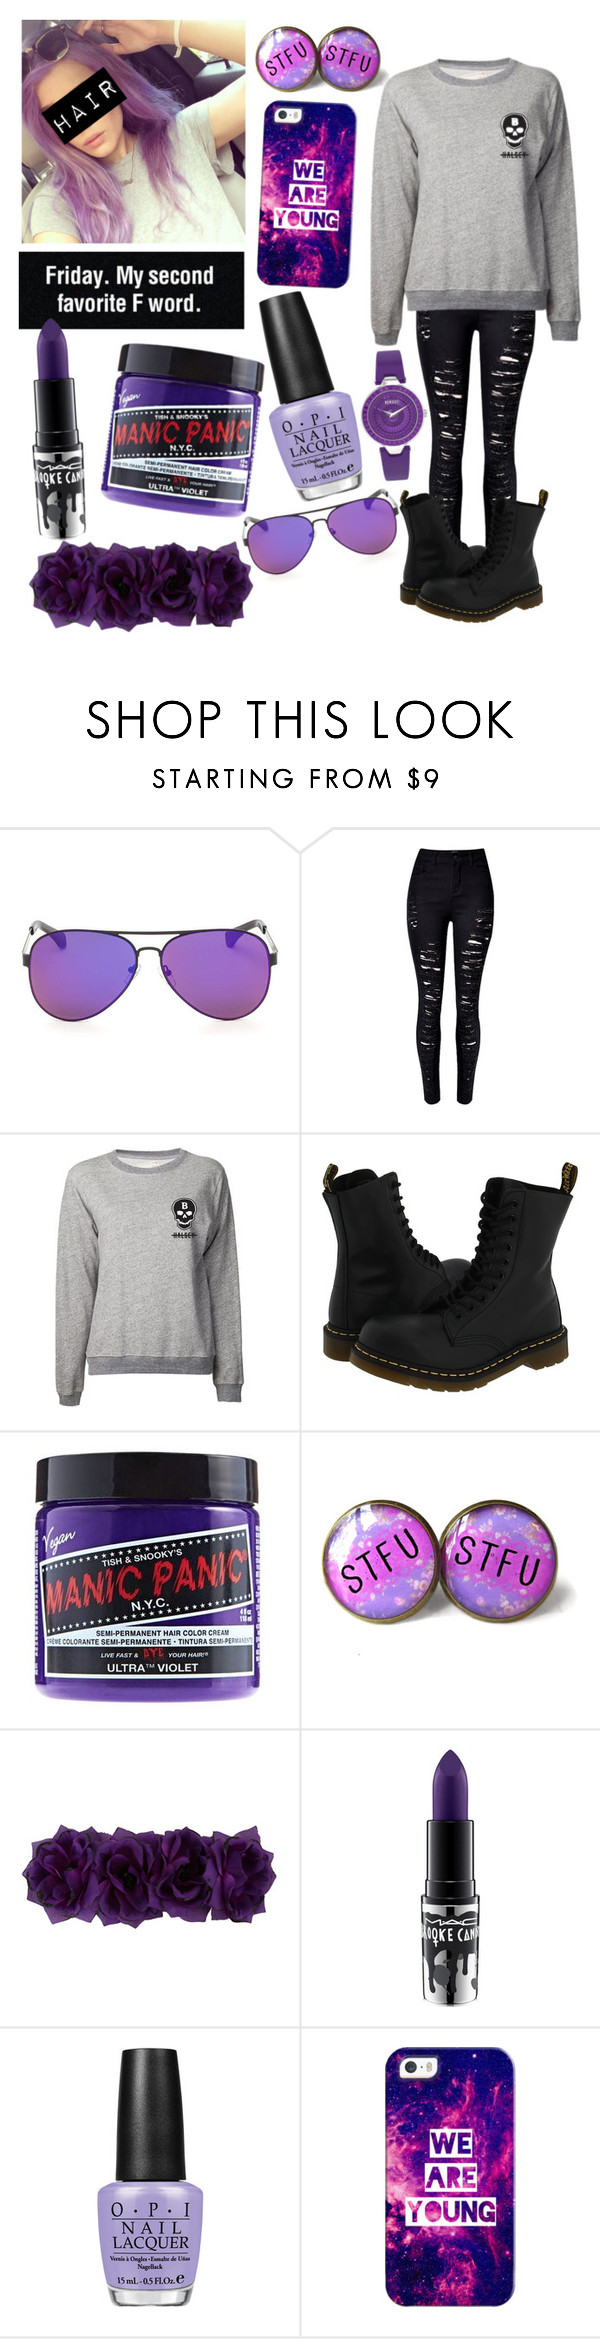 """I'm currently obsessing over purple"" by kaelahclothier on Polyvore featuring WithChic, Dr. Martens, Manic Panic, MAC Cosmetics, OPI, Casetify and Versus"